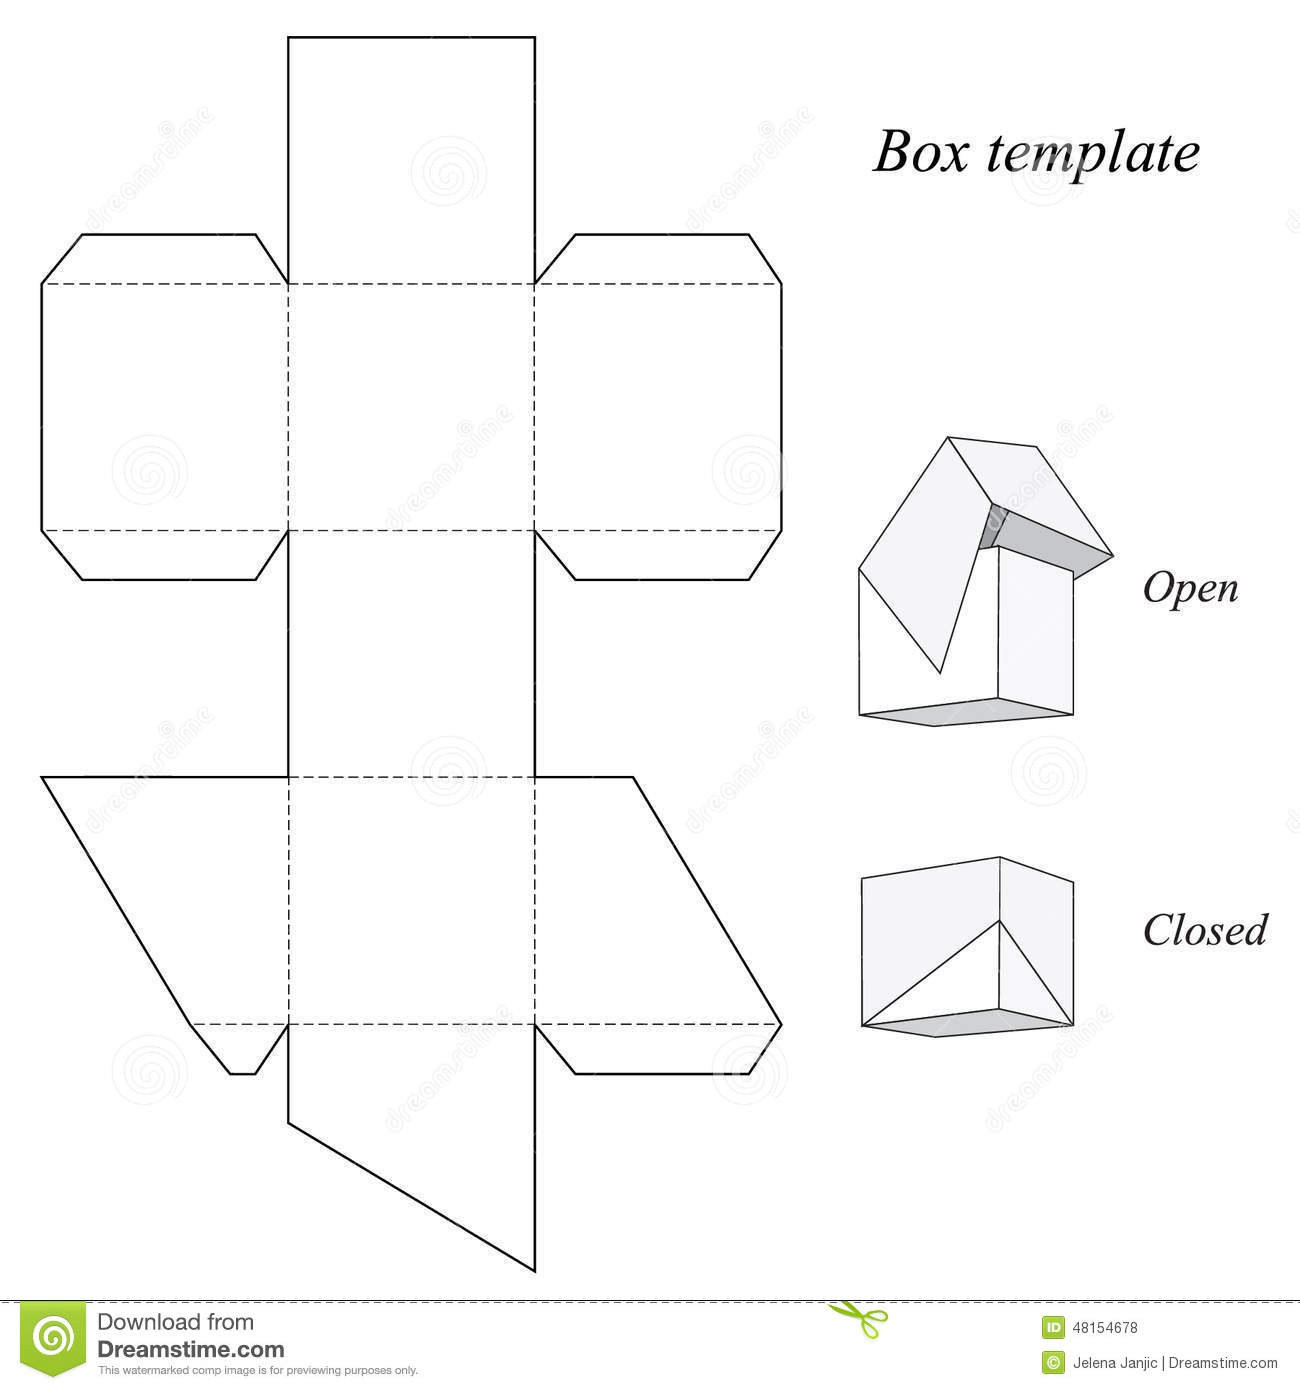 Square Box Template With Lid Stock Vector - Image: 48154678